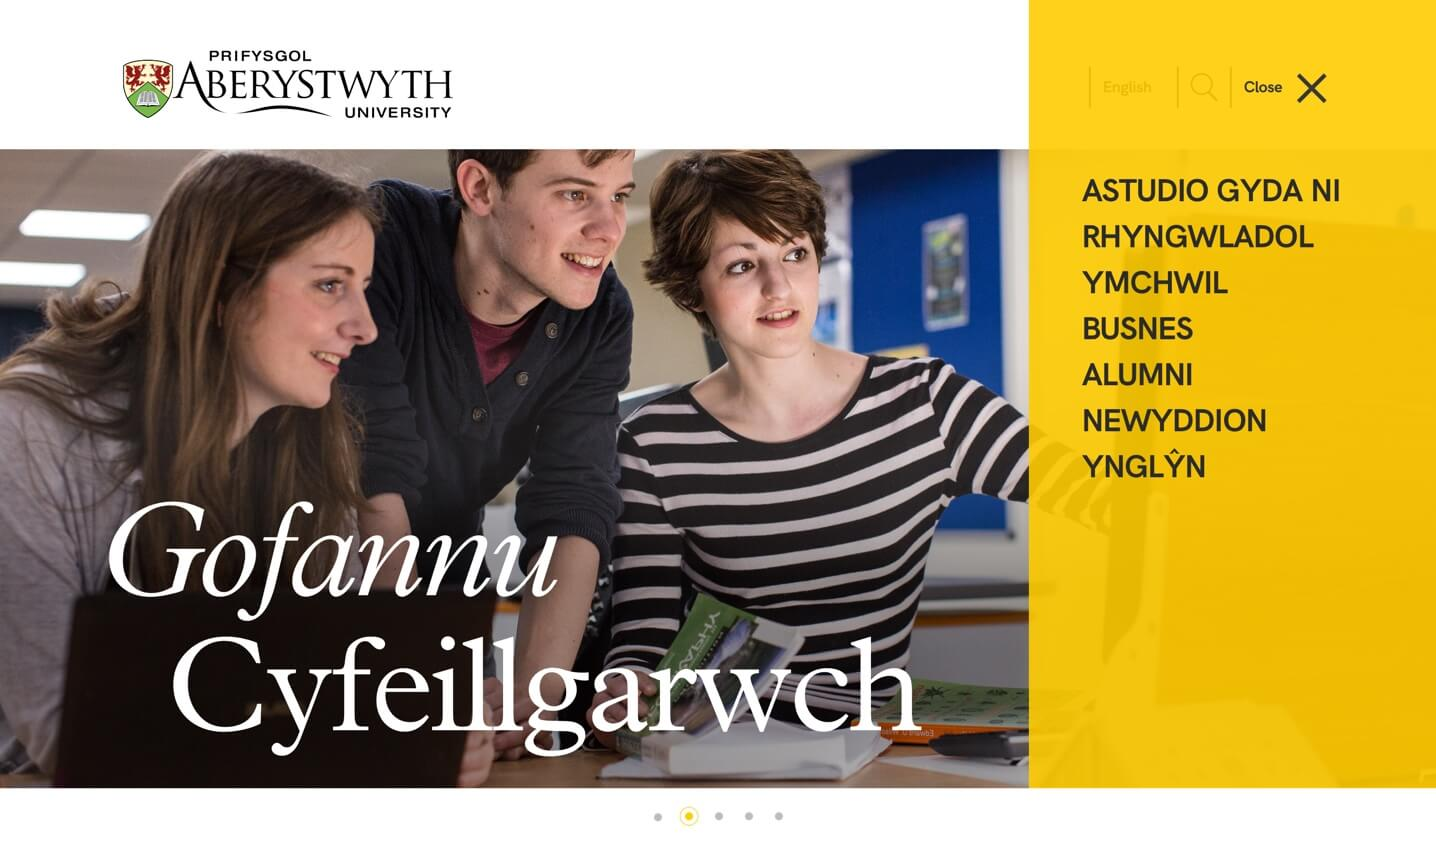 Screenshot of Aberystwyth University website menu in welsh